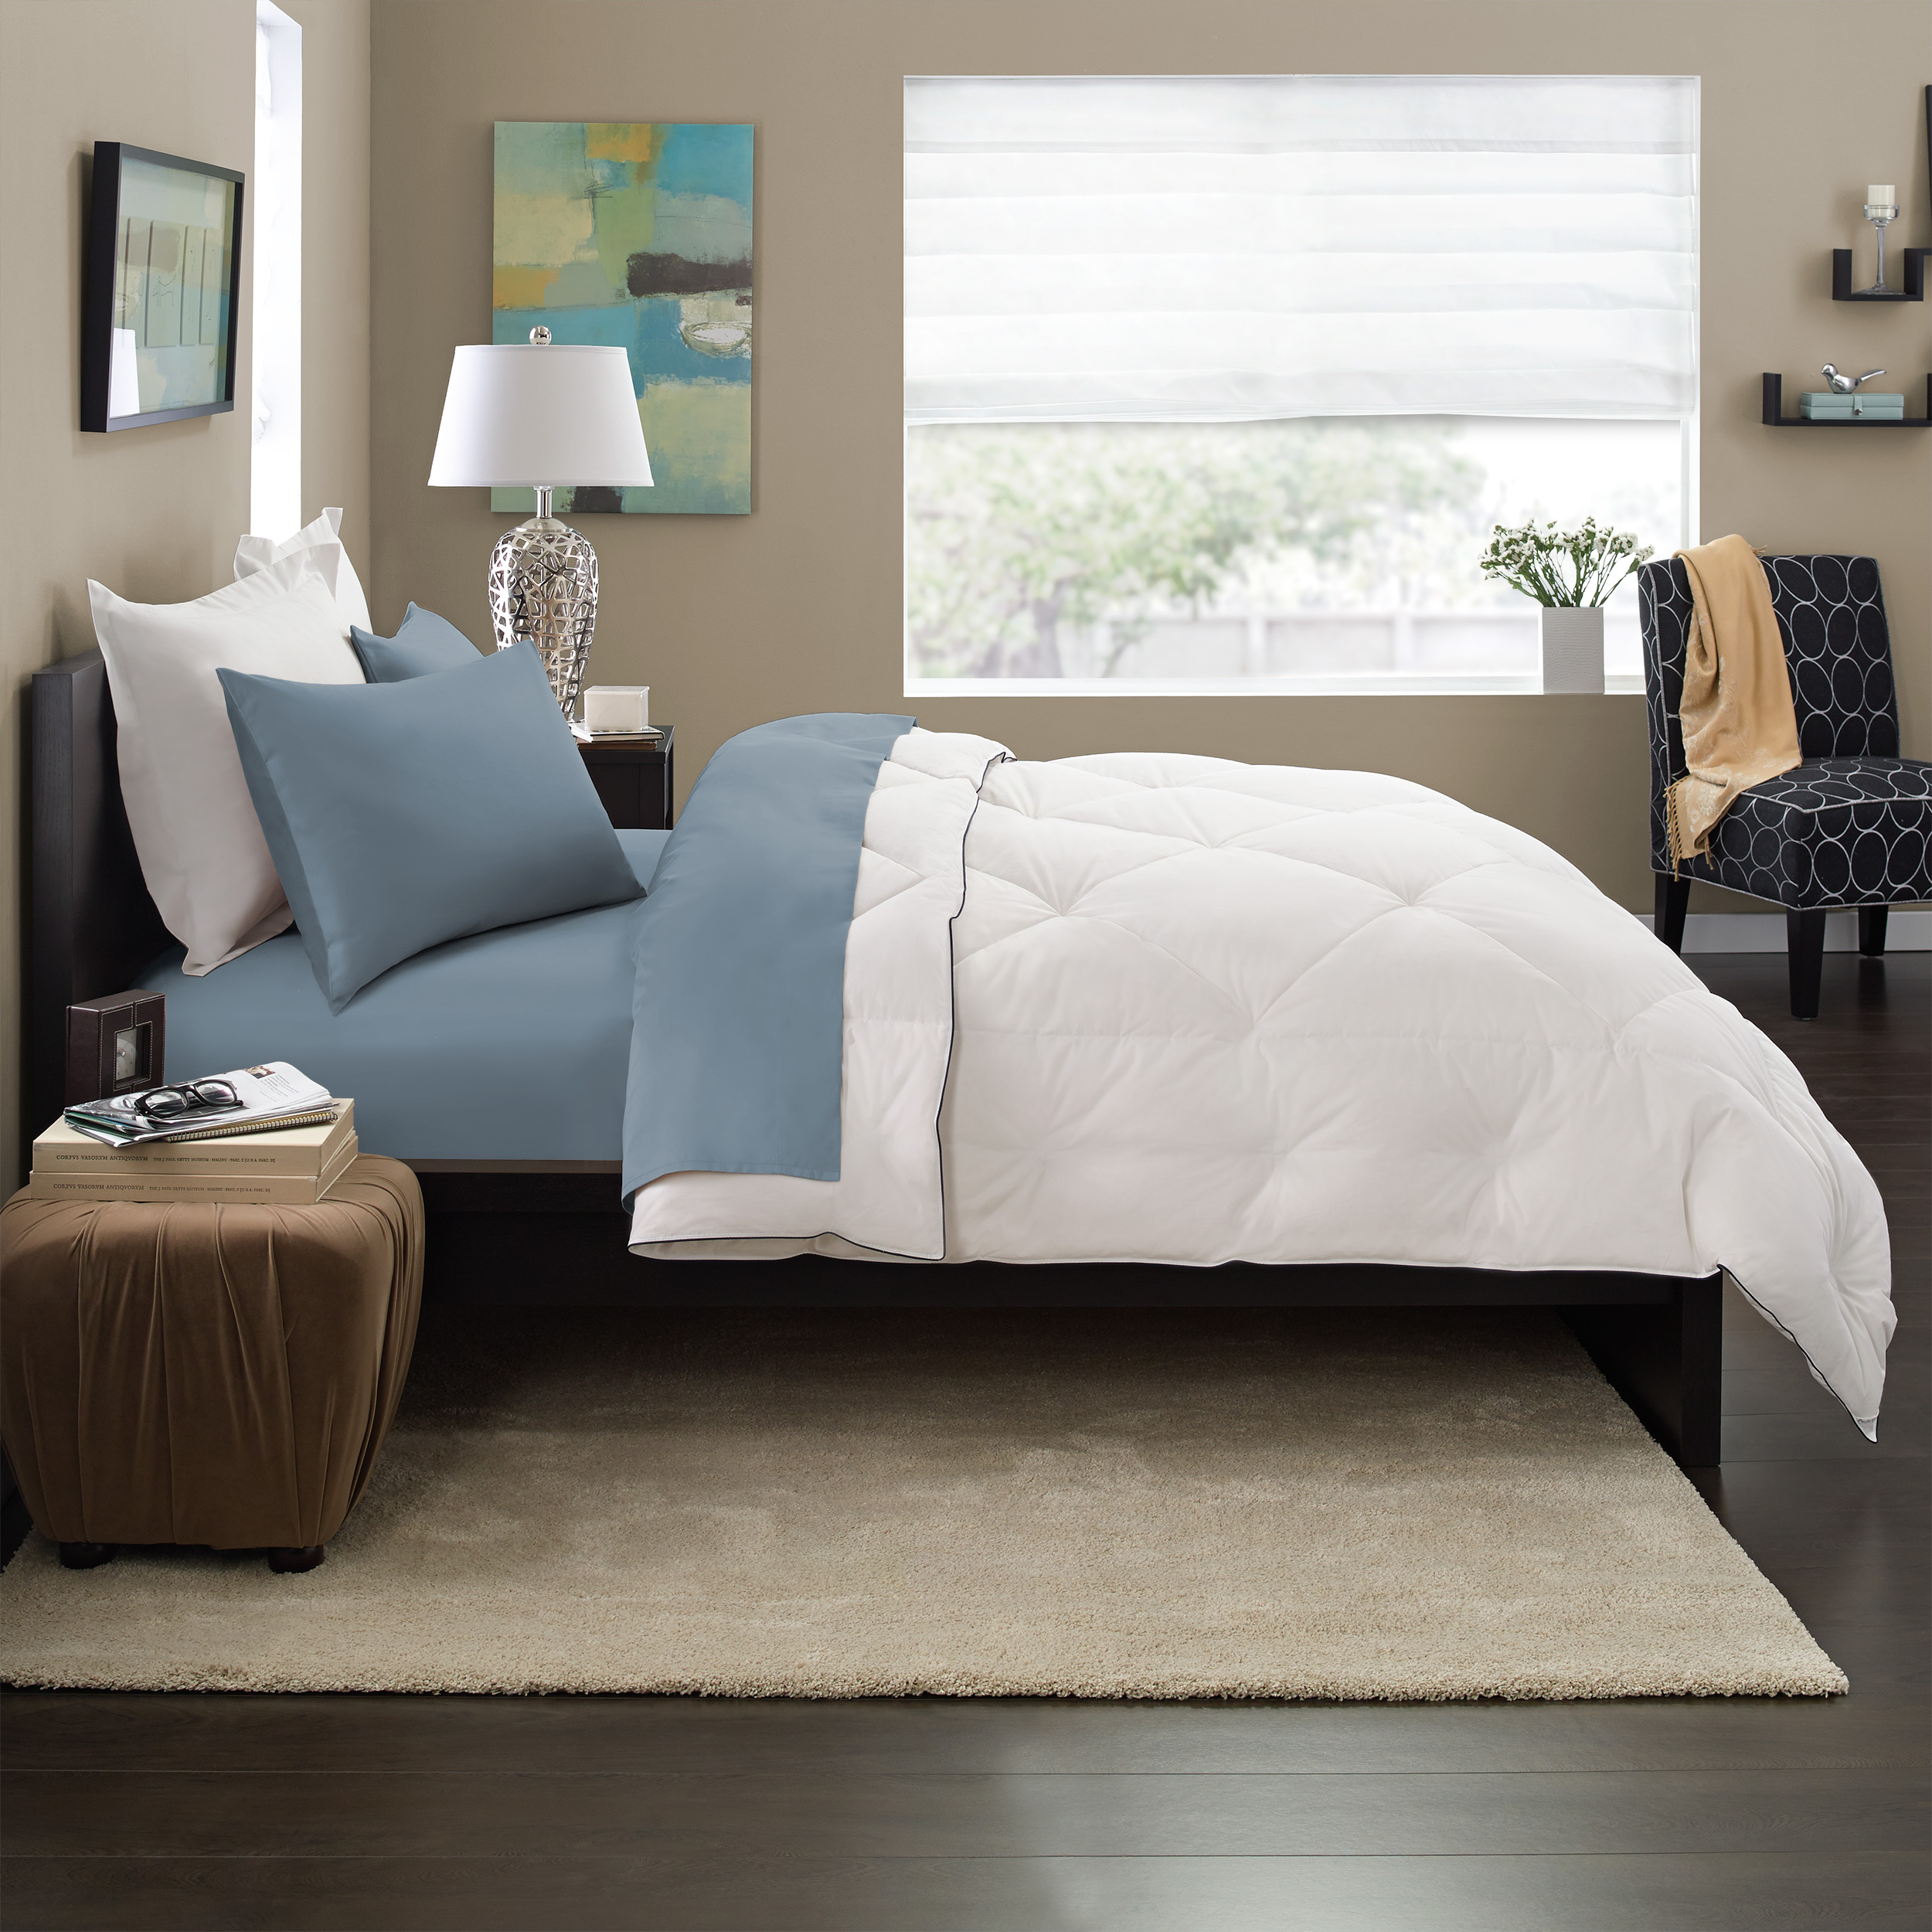 allmodern connection images comforter qlt sleep gallery modern duvet wid alternative comforters down hei inserts p number fmt